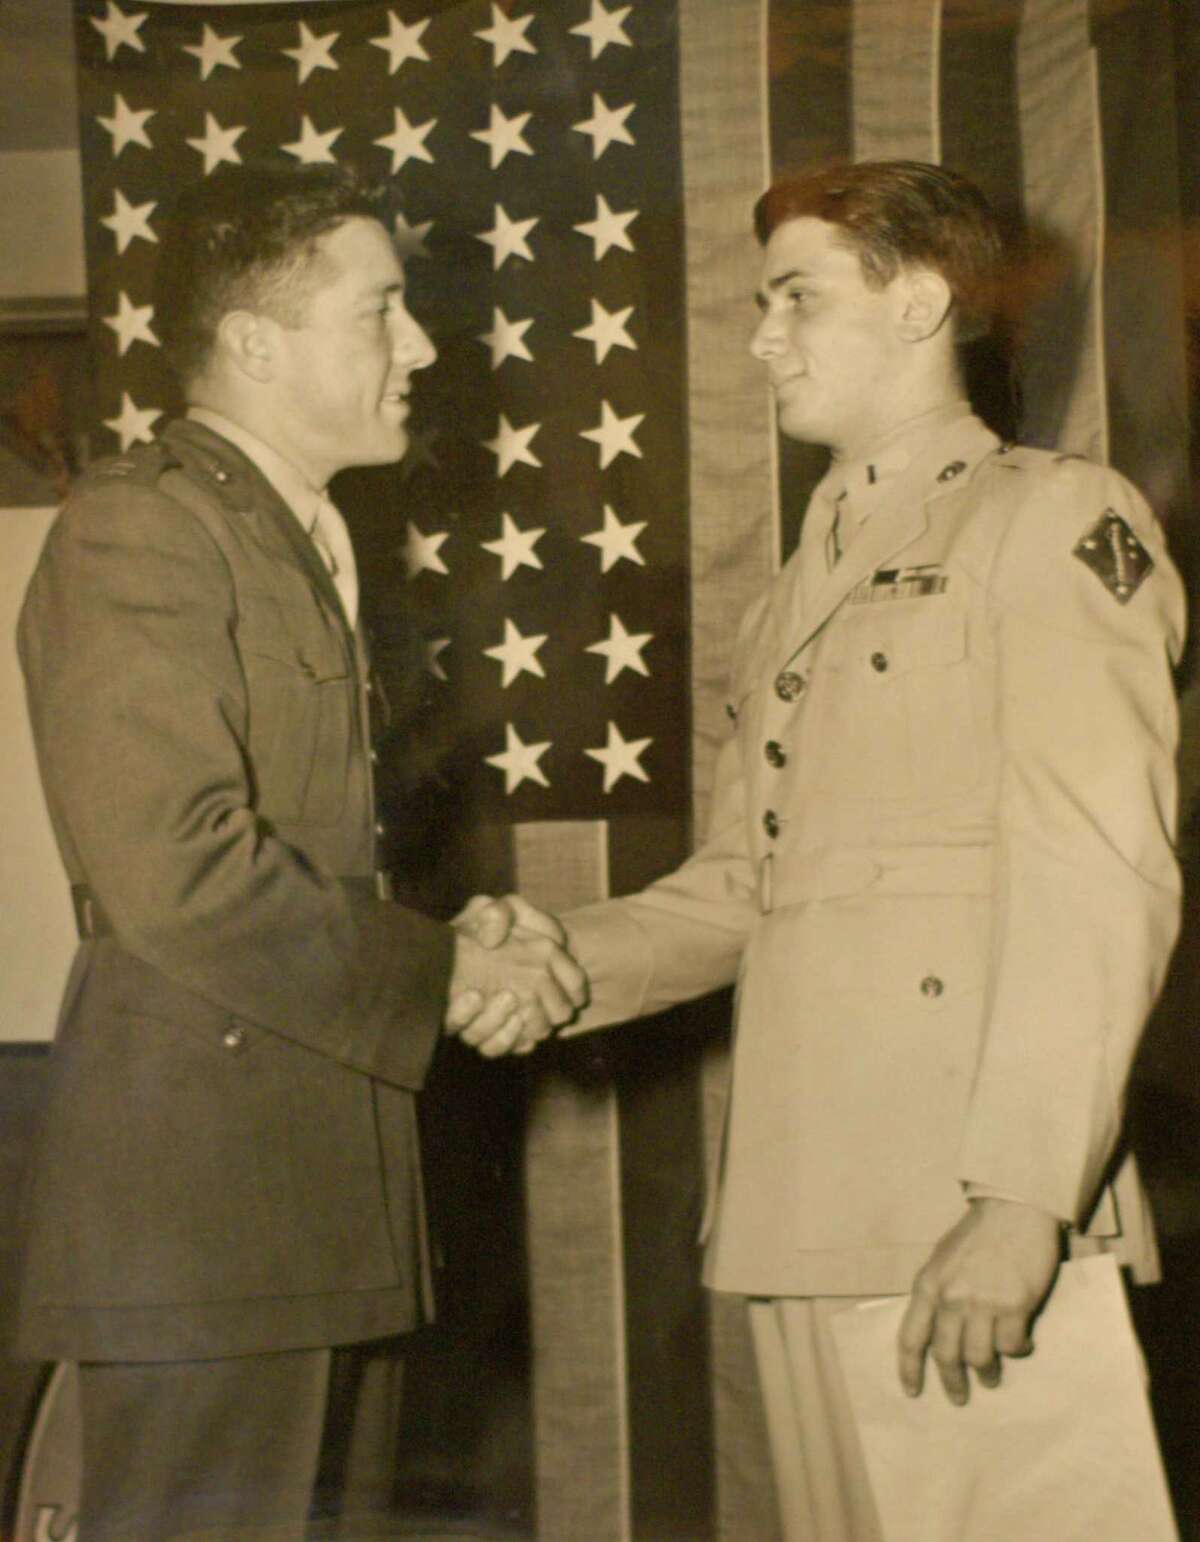 Ed Bloch, of Latham, N.Y., right, in a 1946 photo when he received his Bronze Star. (Provided photo/Times Union archive)